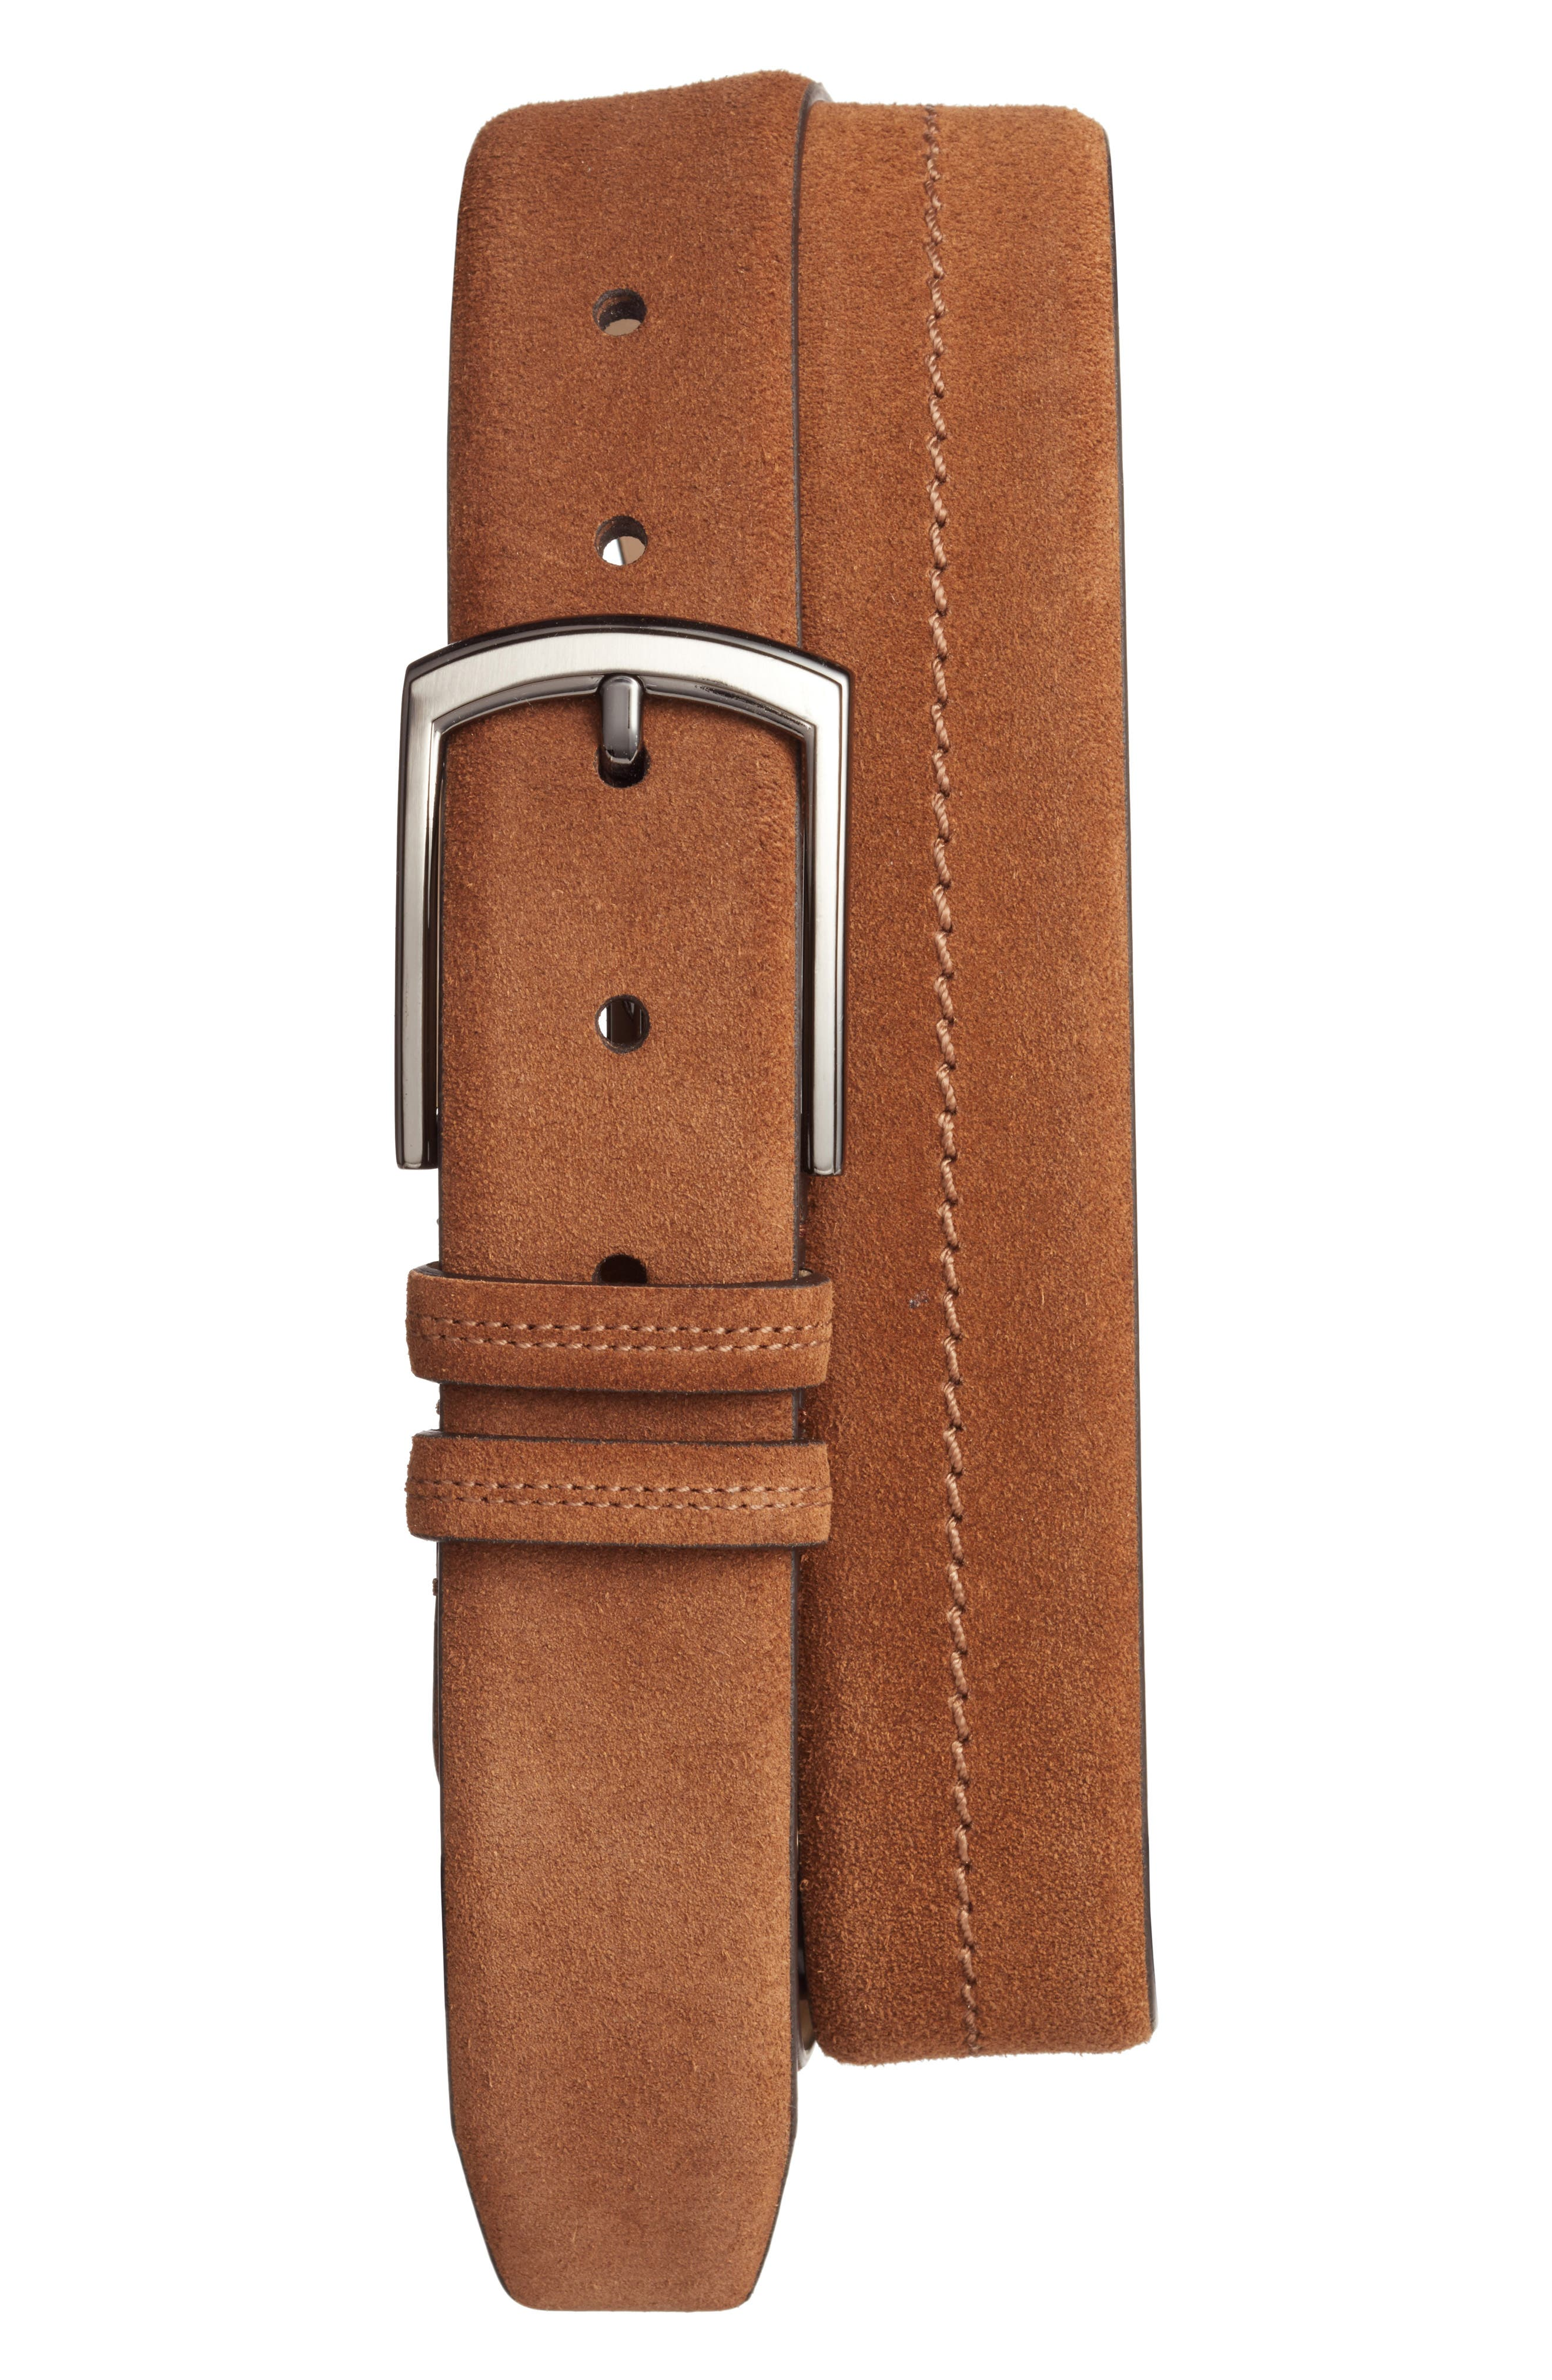 Fuji Suede Belt,                             Main thumbnail 1, color,                             Tan